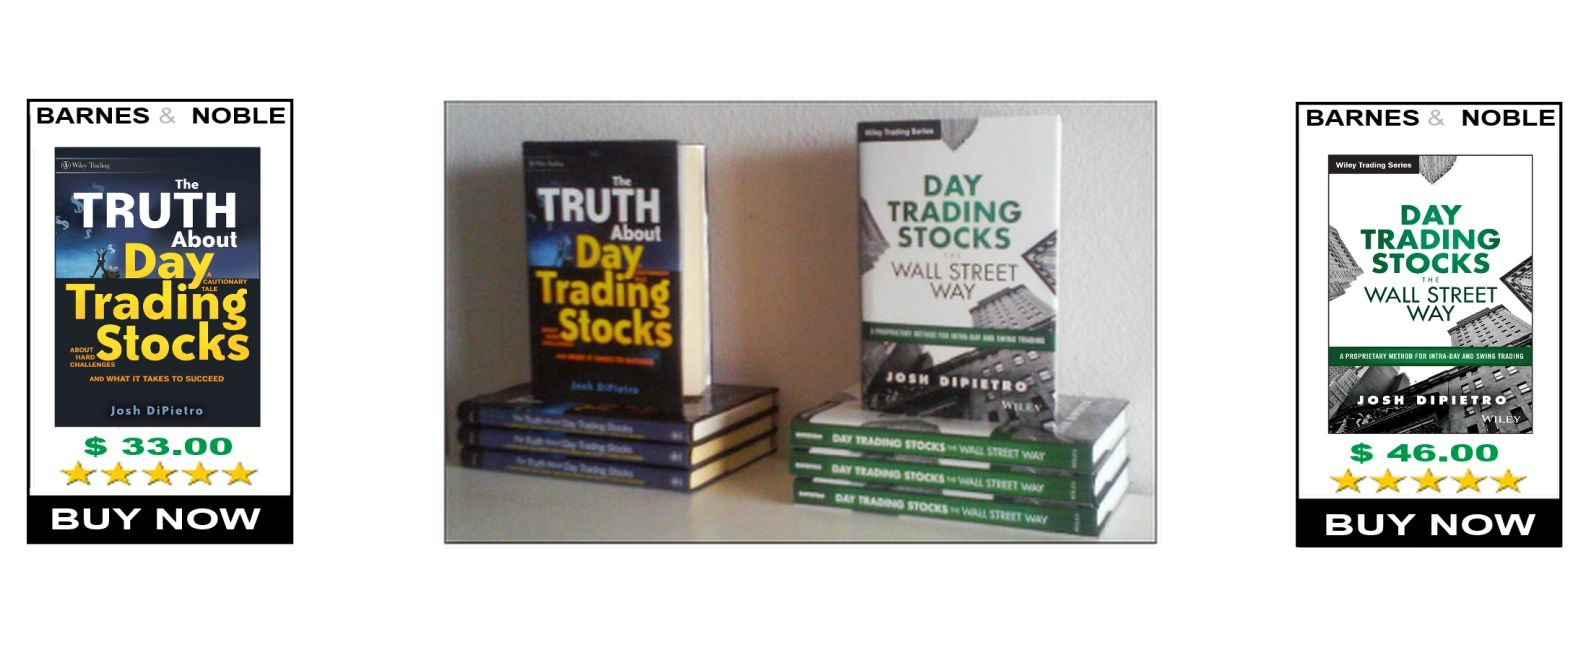 josh dipietro, day trader josh, swing trade stocks, live trading with day trader josh